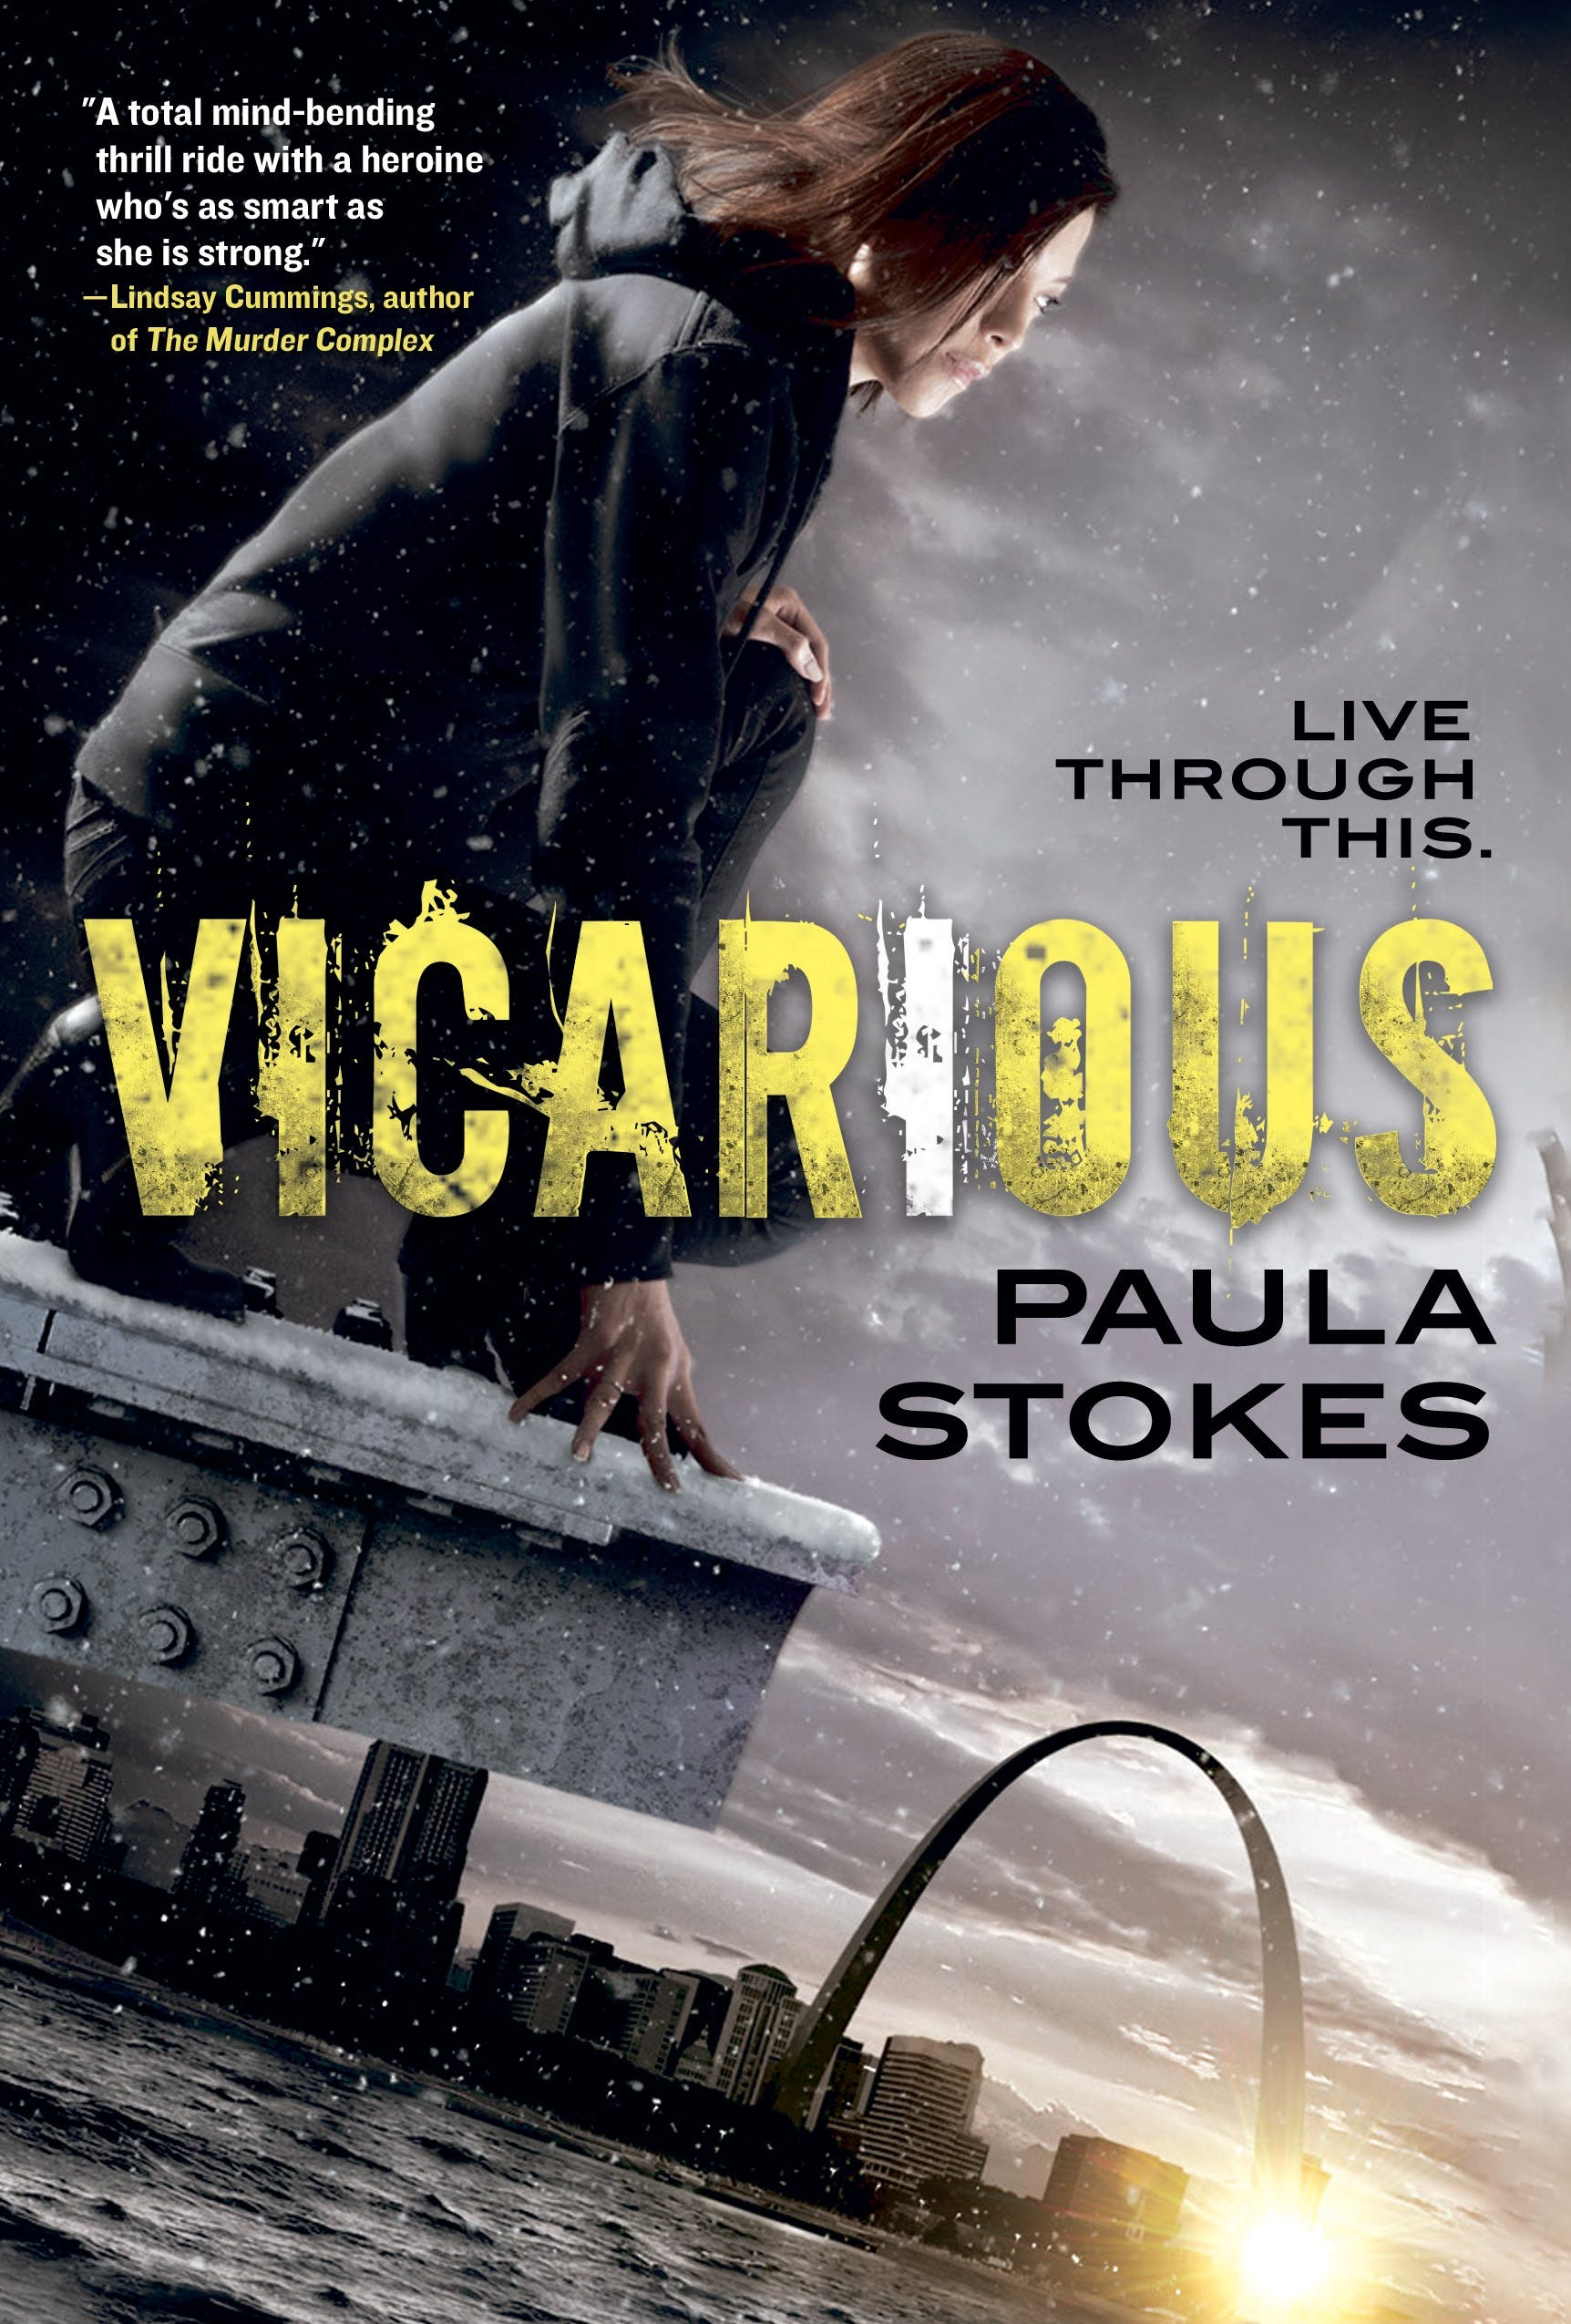 Image of Vicarious